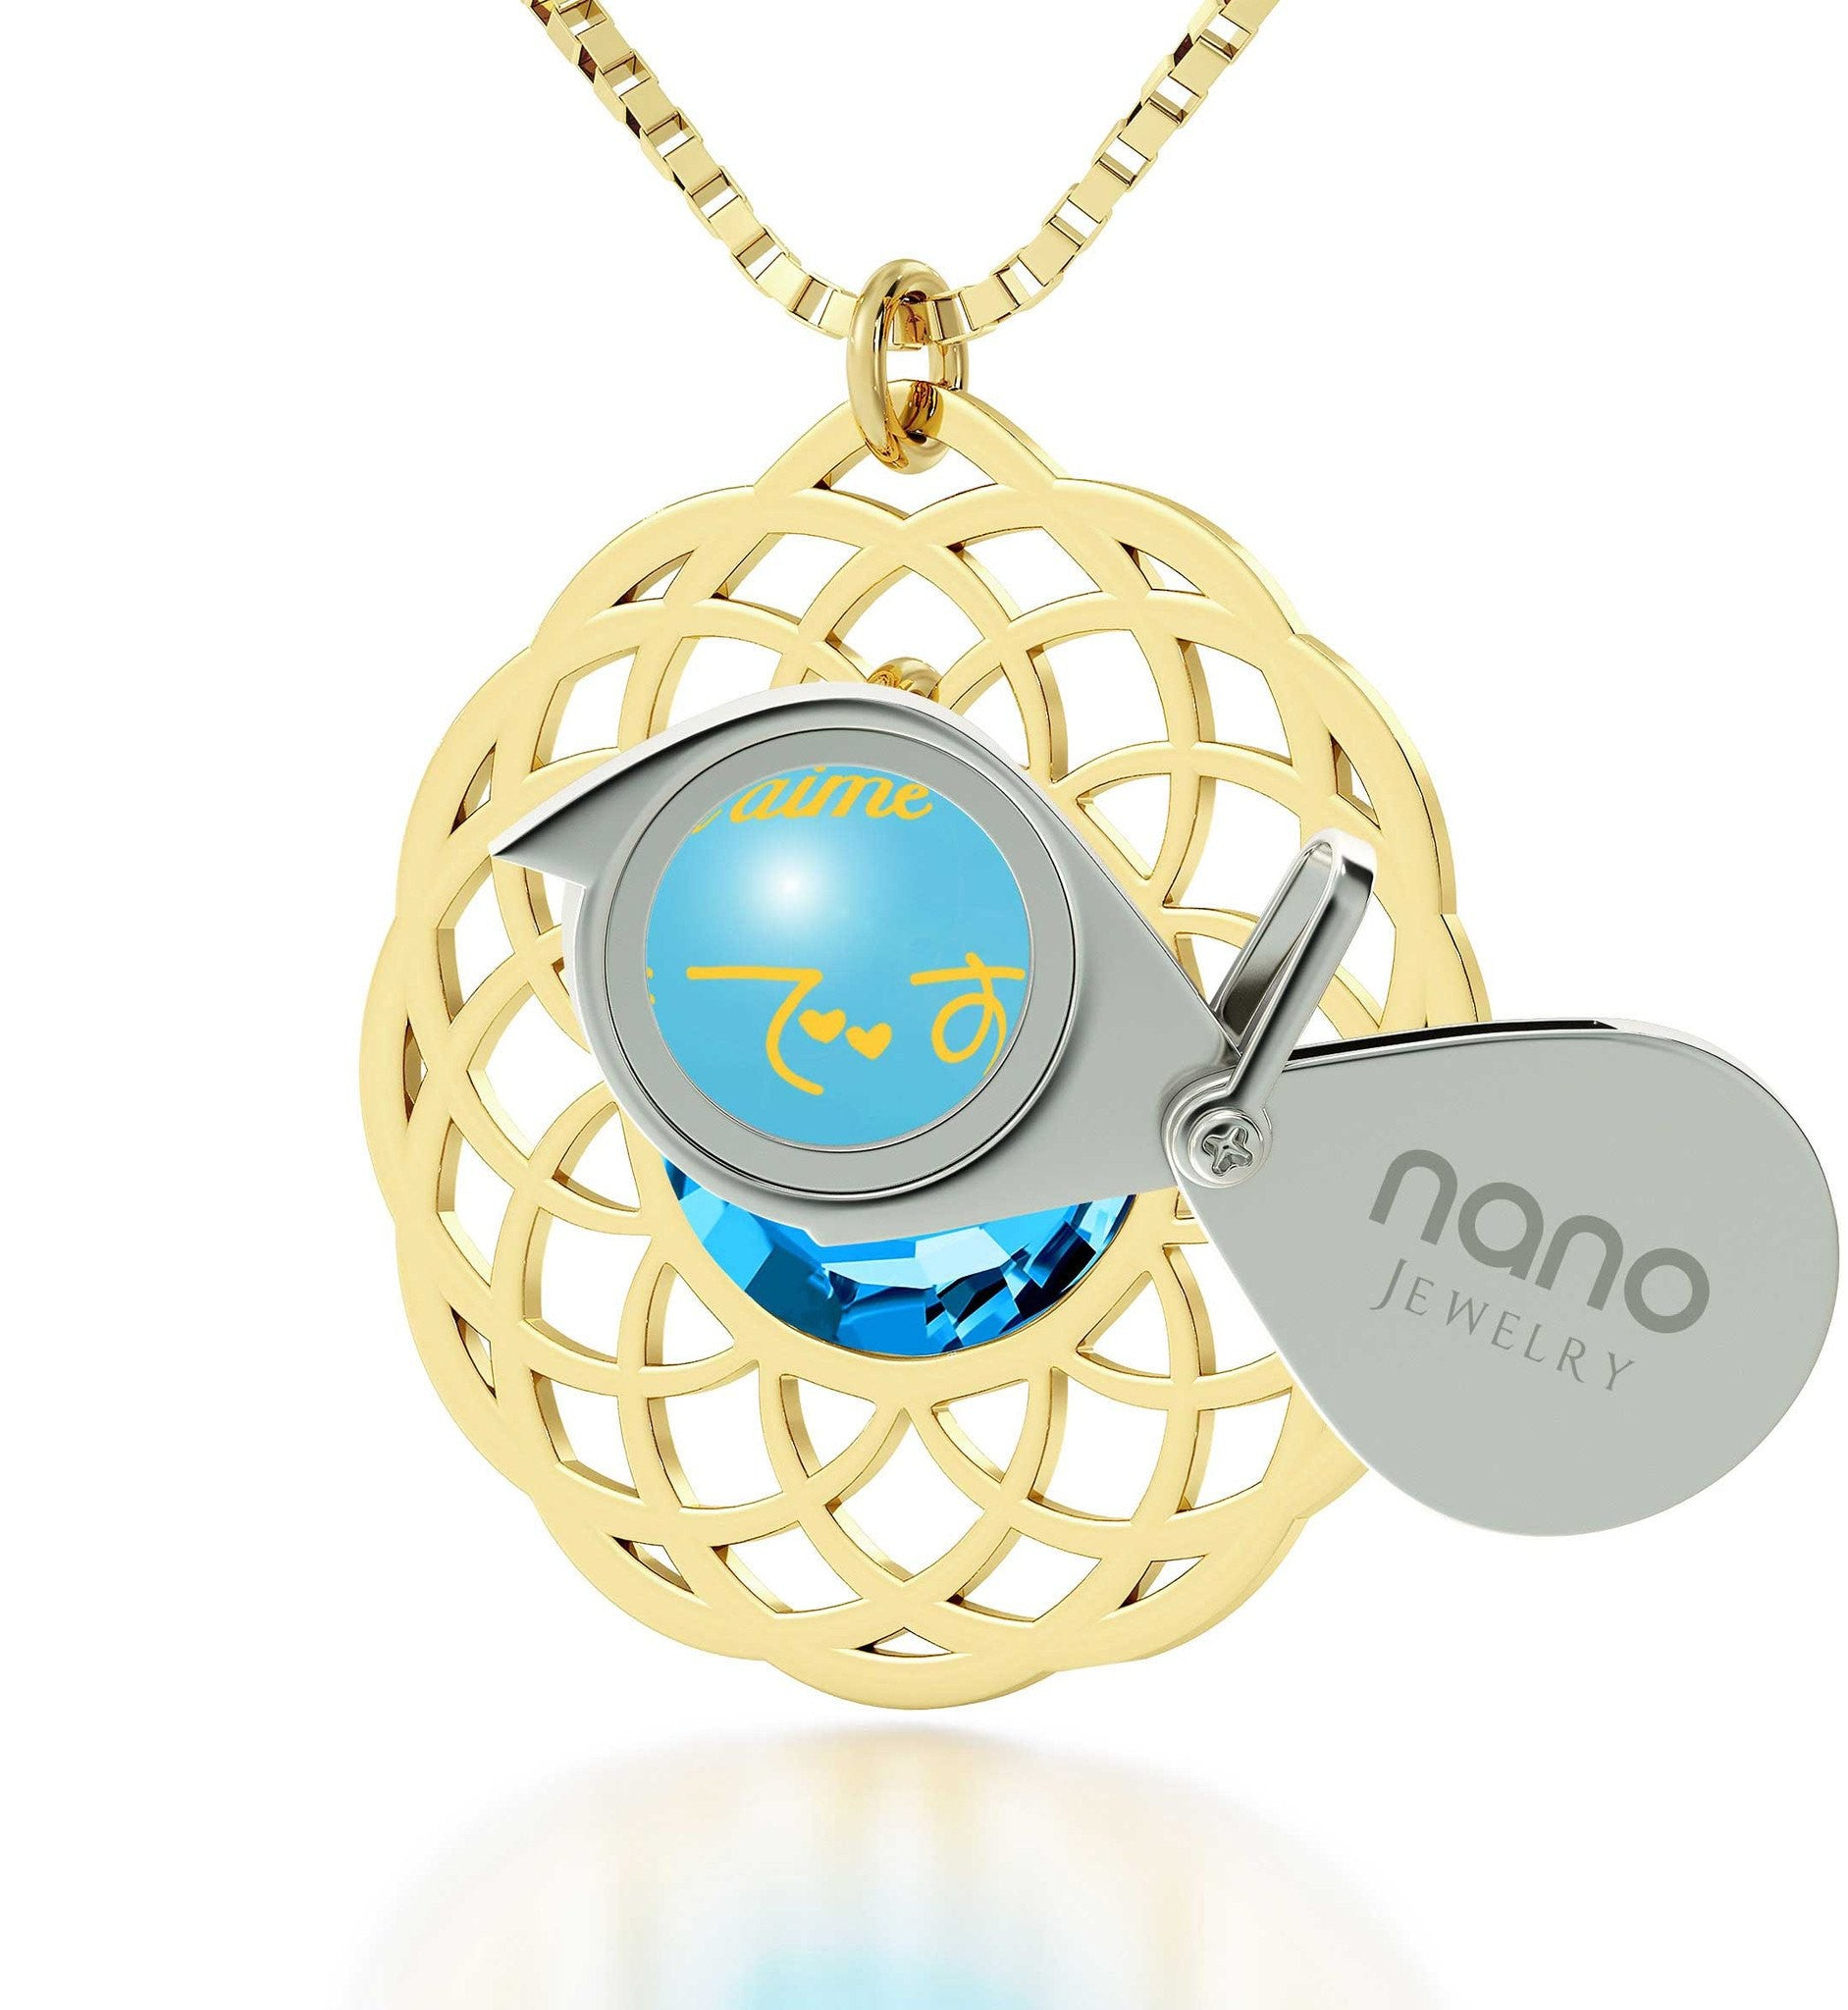 Wife Birthday Ideas, Gold Plated Necklaces, I Love You Jewelry, Nano